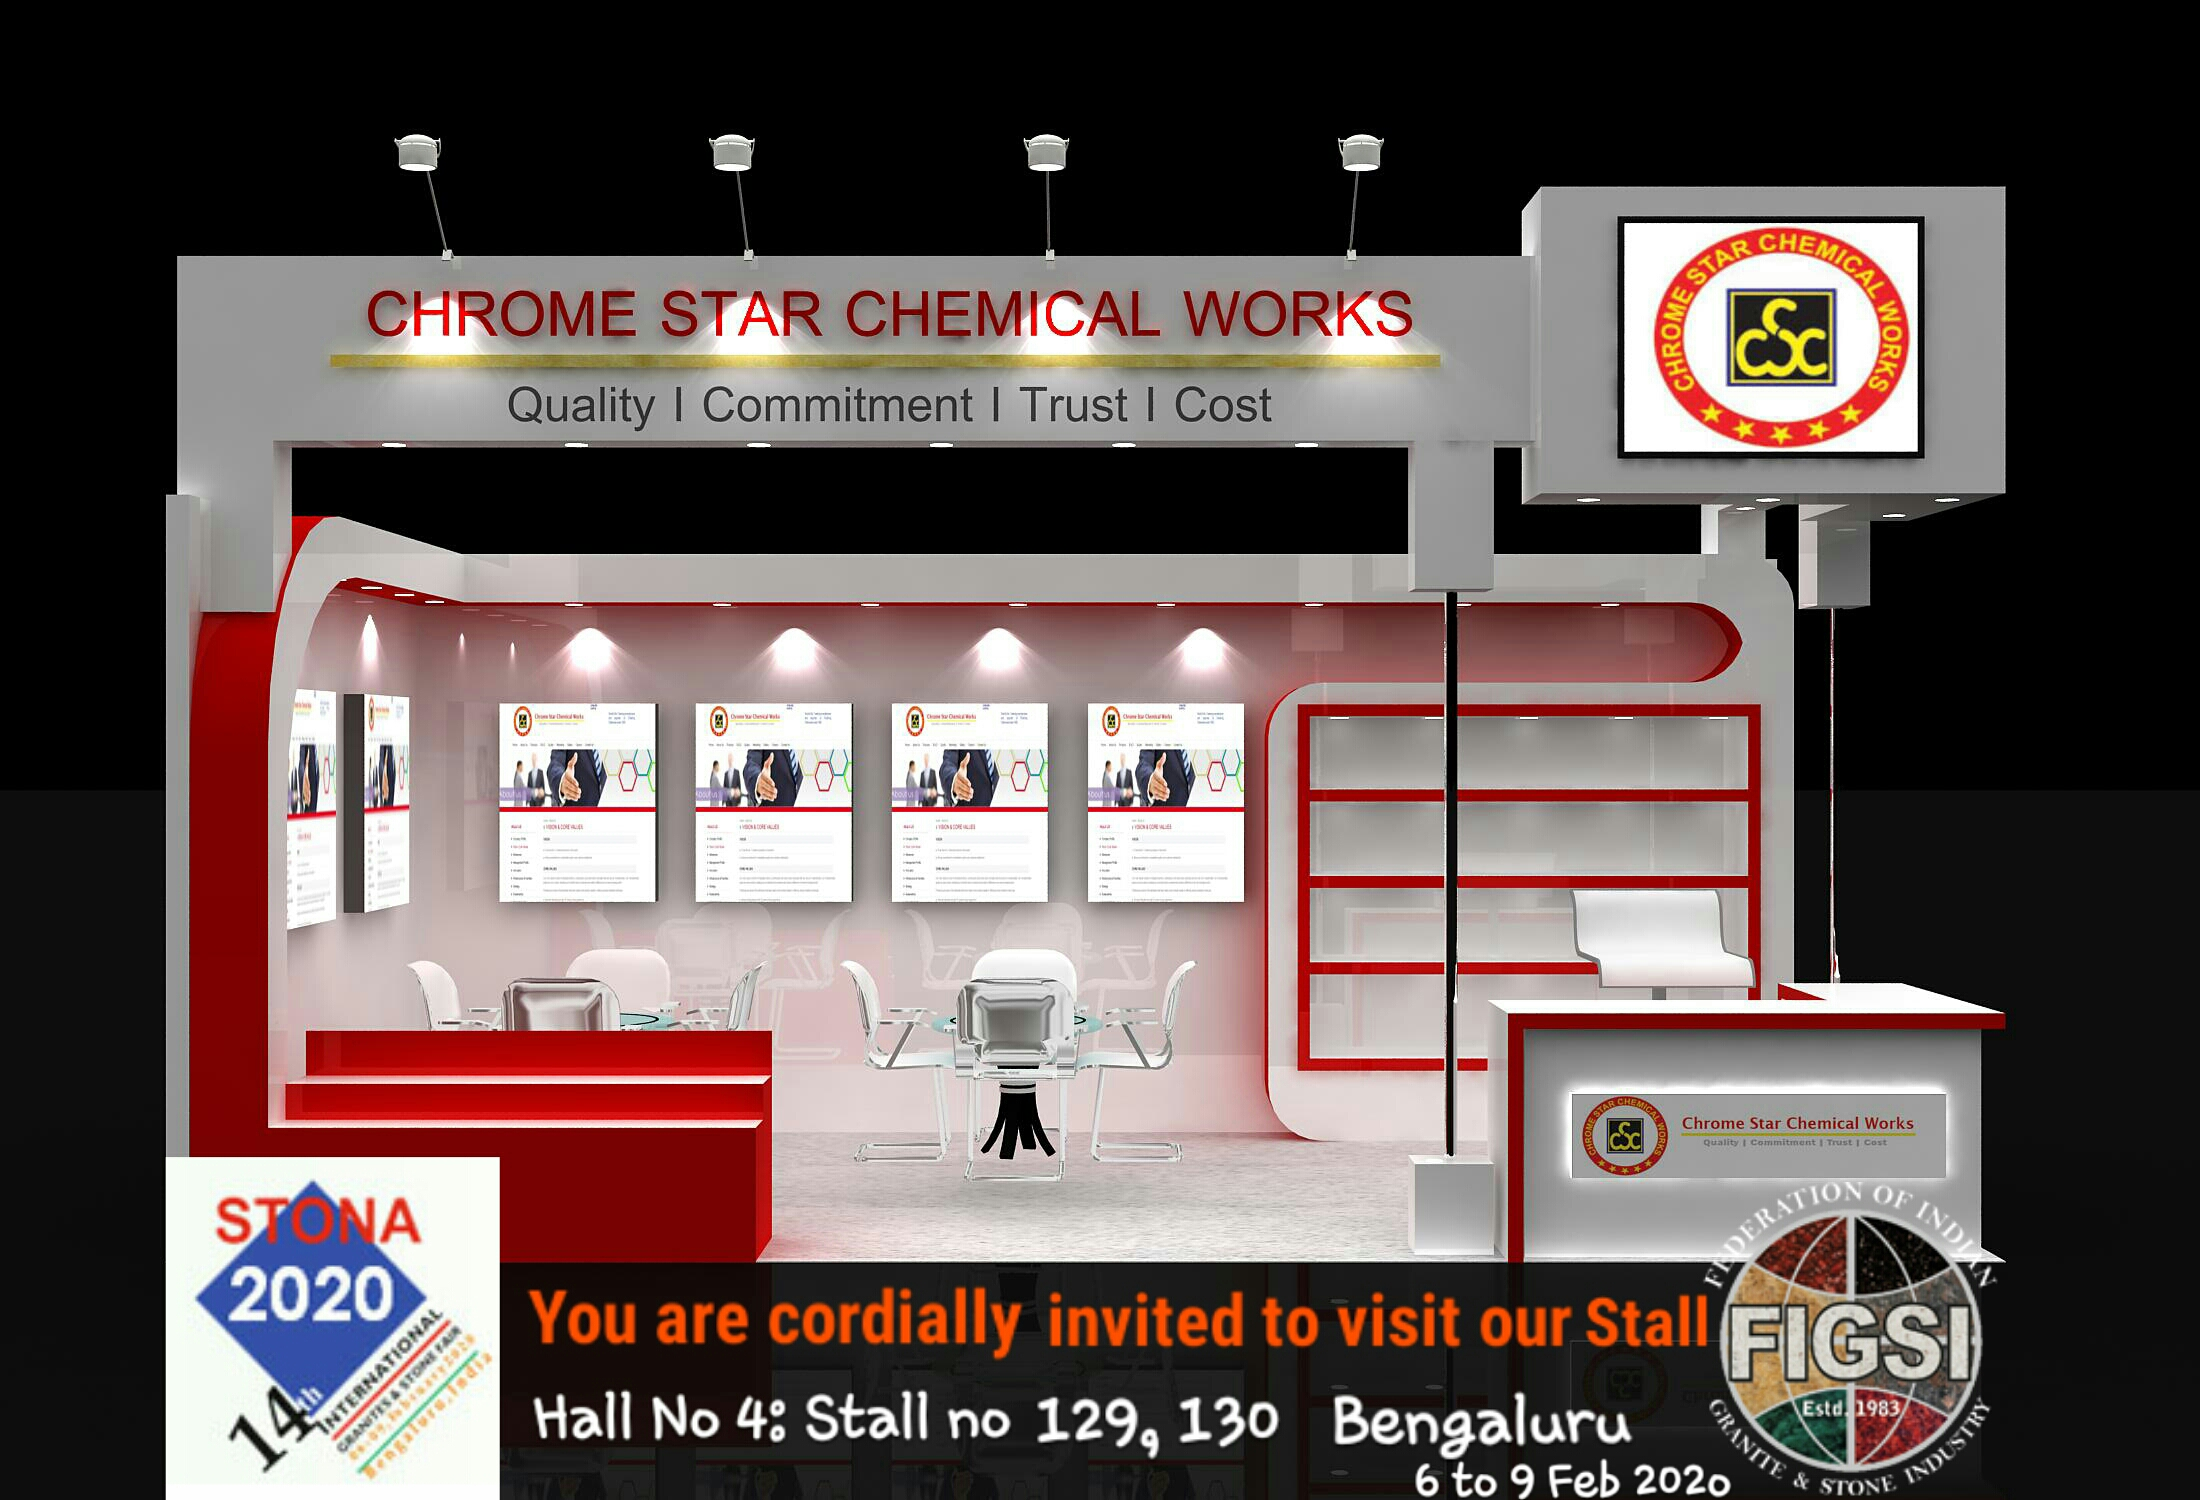 chrome Star chemical works stone mart